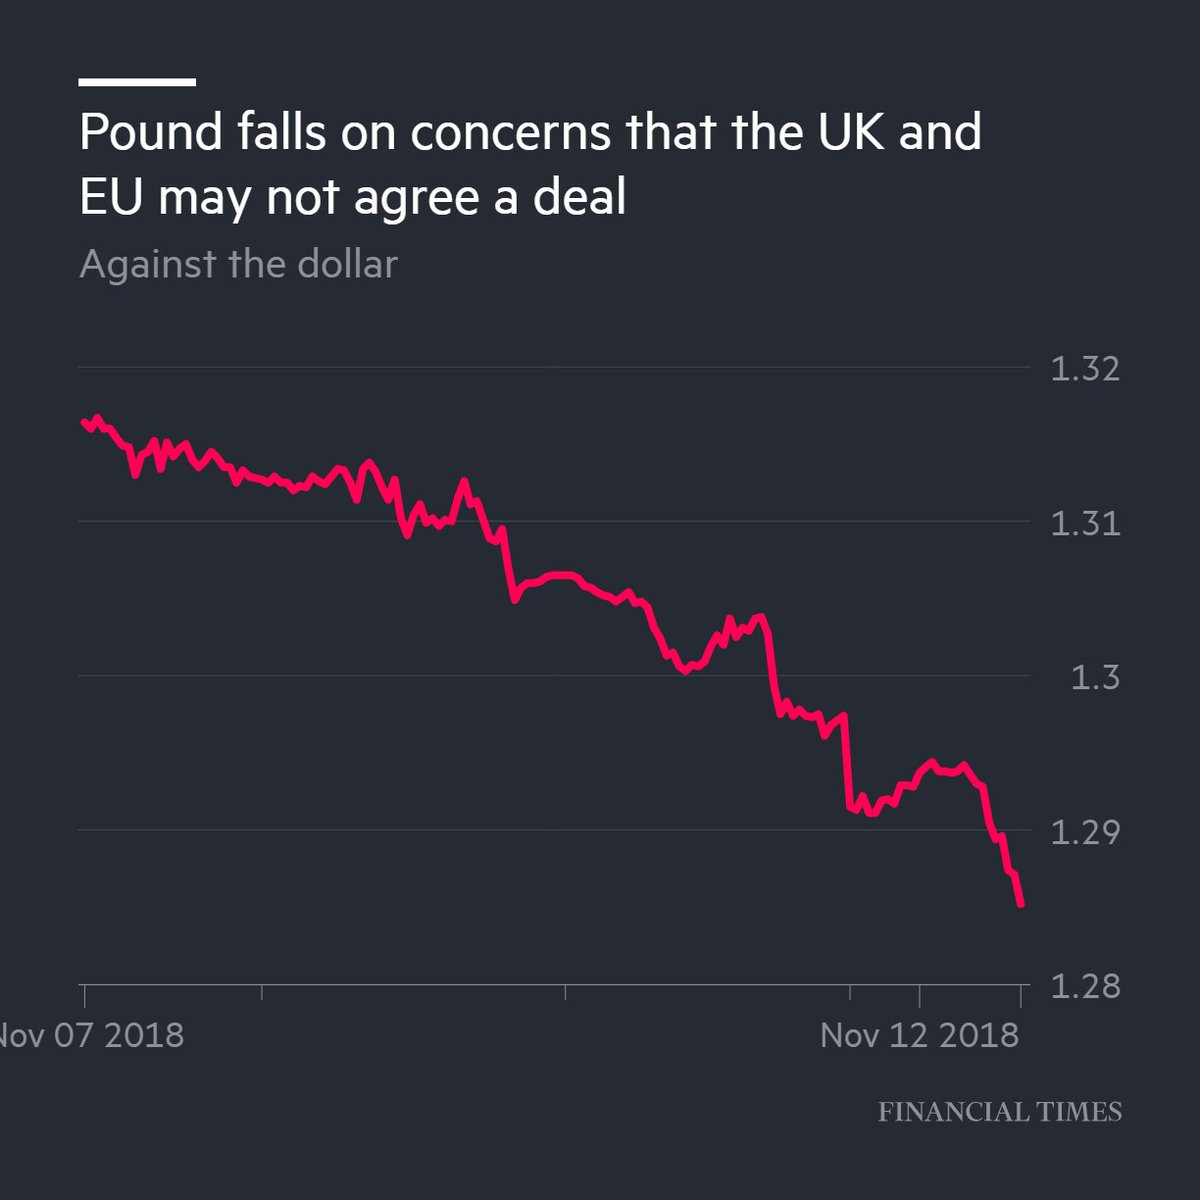 Currency As Doubts Intensify That Theresa May Not Win Parliamentary Support For A Brexit Deal Https On Ft 2dywvbh Pic Twitter Gplpxfakxi